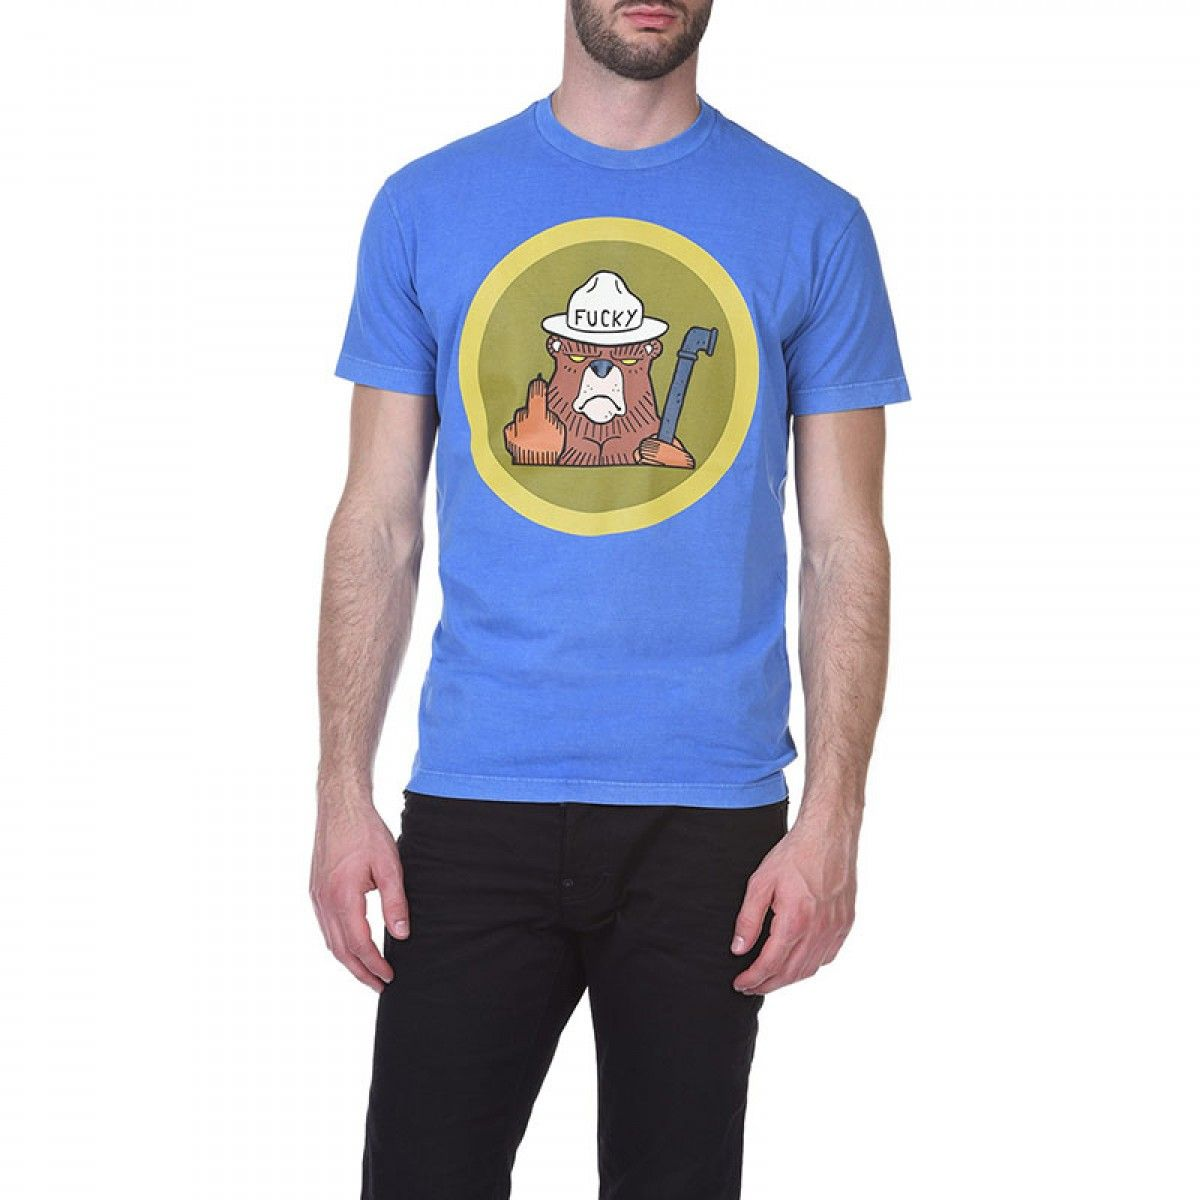 e7f14183bd8002 Dsquared2 SS2018 Mens T-Shirt DT209 Fucky Bear Blue | Clothingtmall ...